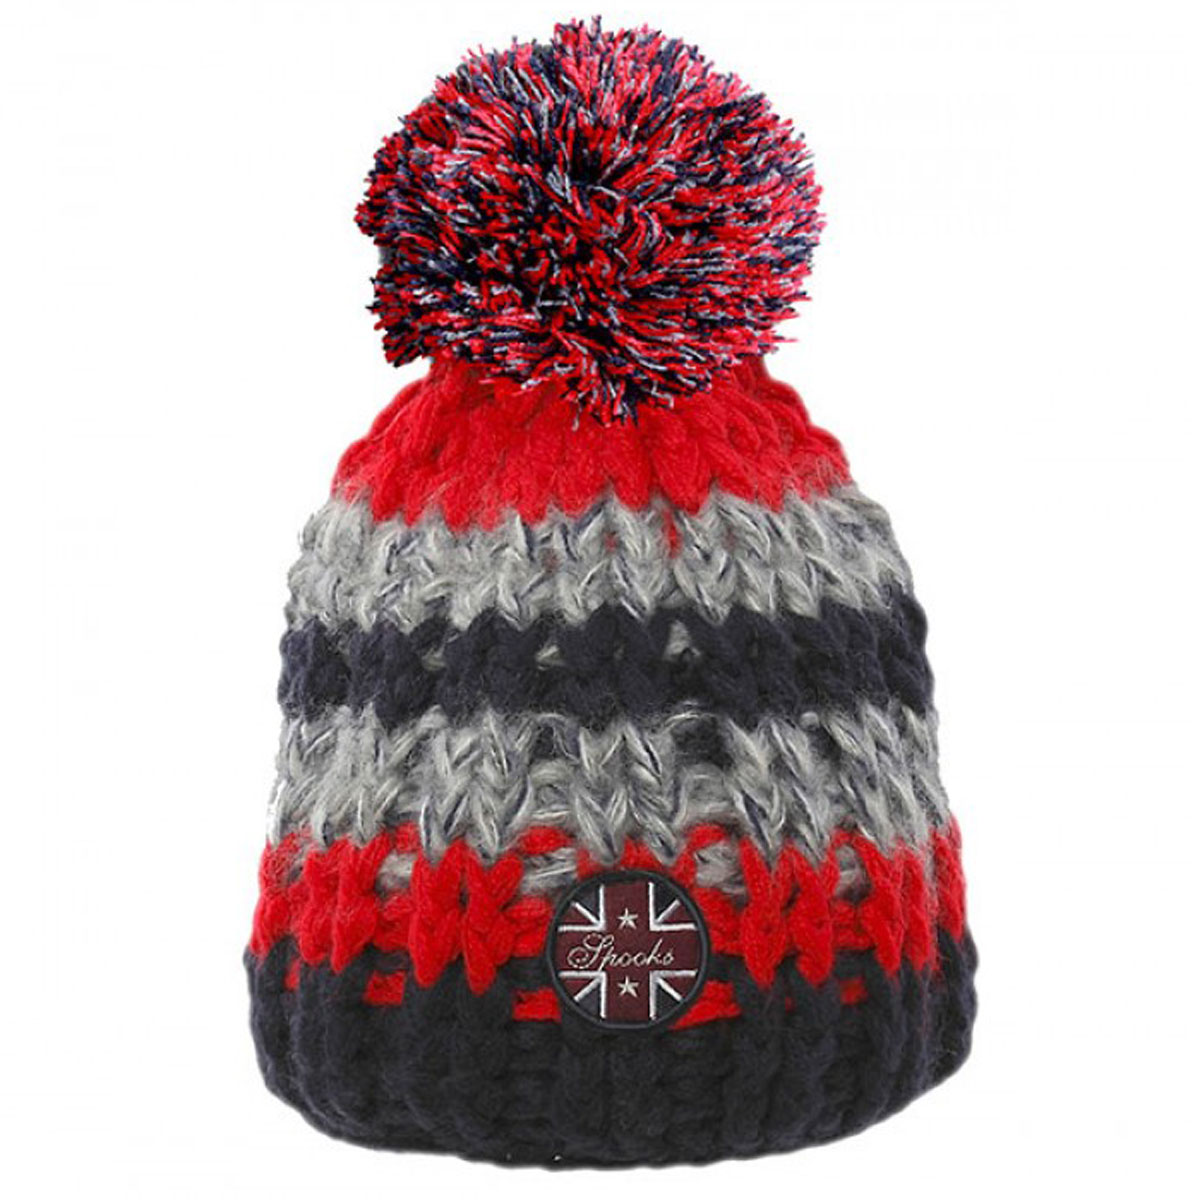 950b5efaa63 Spooks colour hat red navy redpost equestrian jpg 1200x1200 Spook navy hat